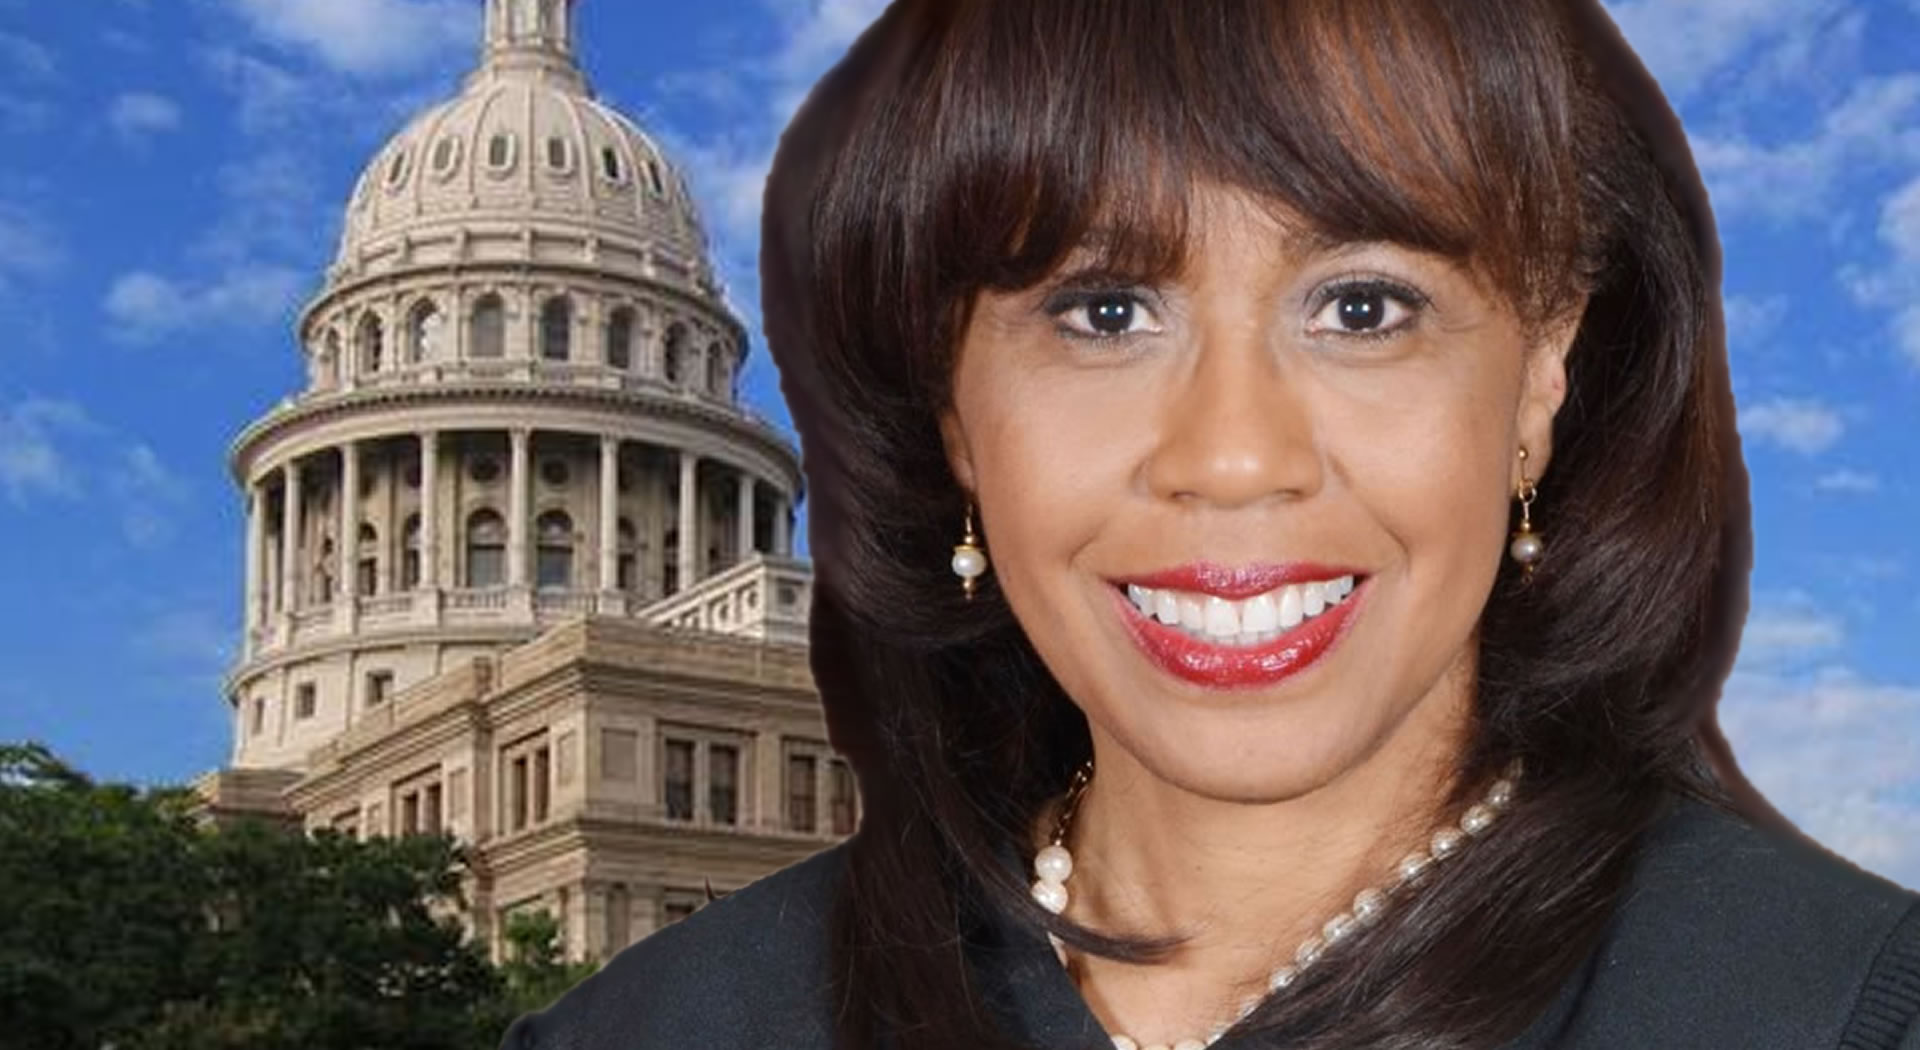 Dallas Morning News Recommends Staci WIlliams in the Democratic Primary for Texas Supreme Court Place 7